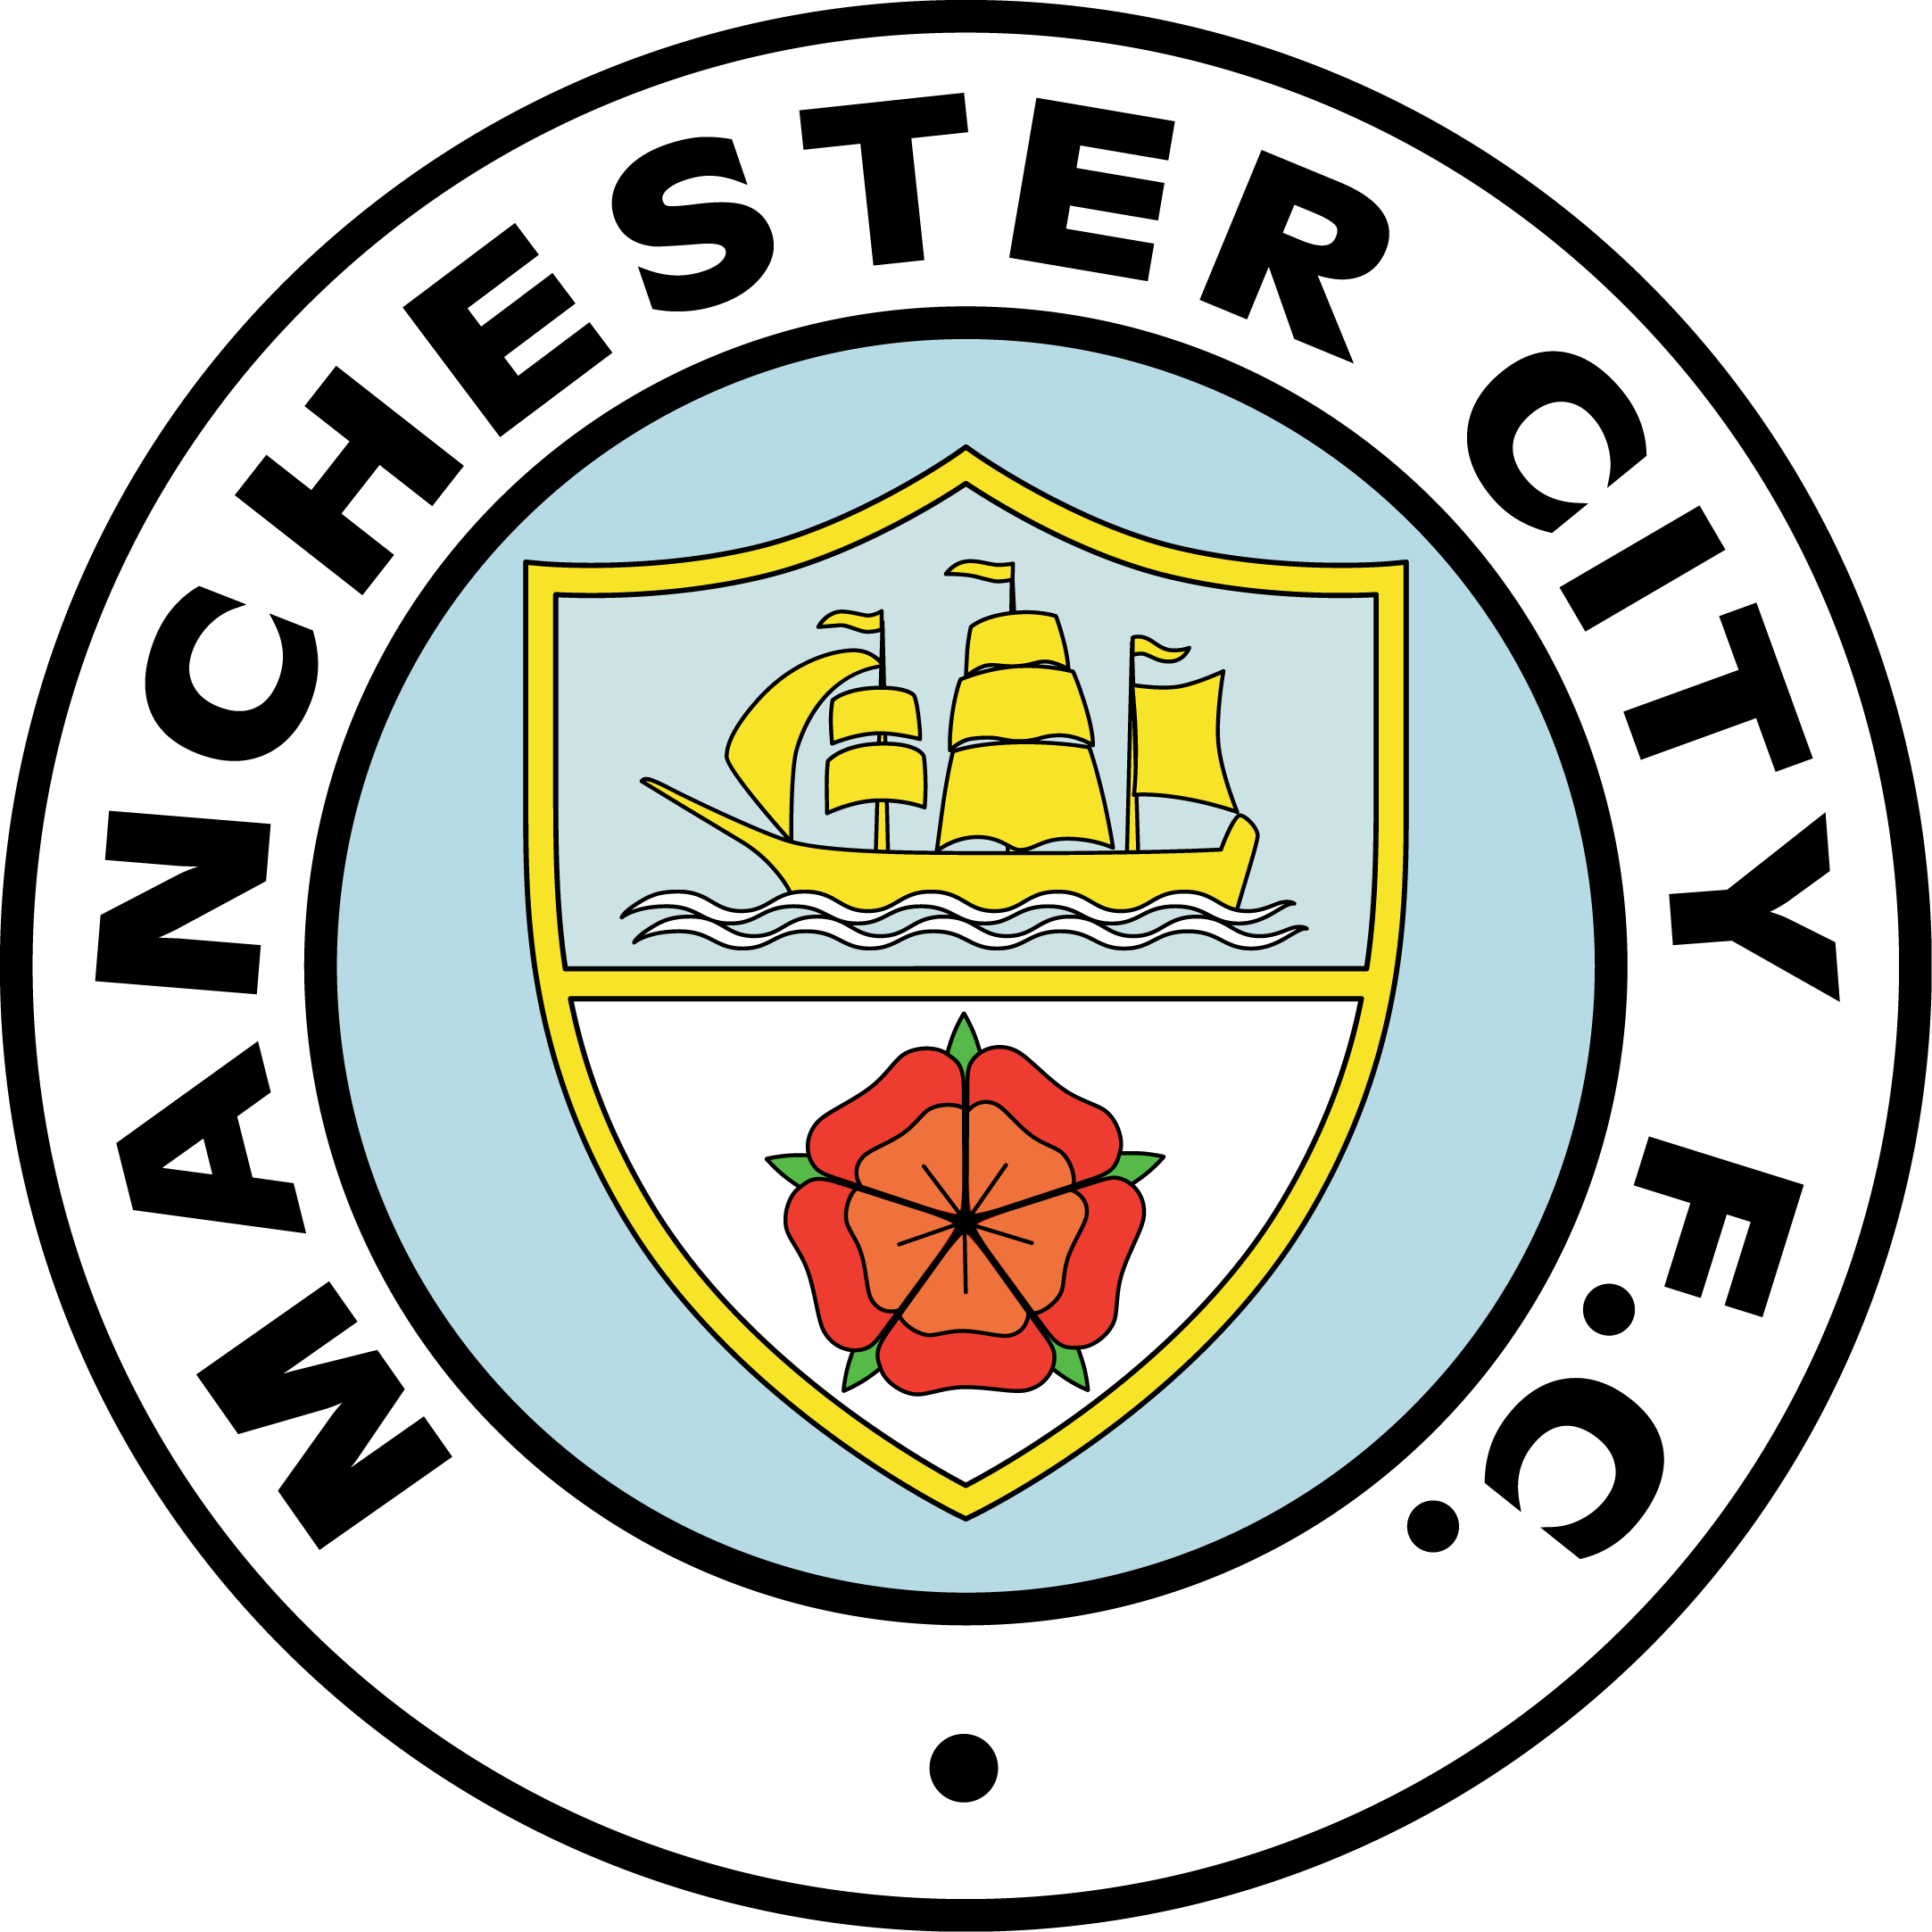 Manchester City Man City Badge Manchester City Football Club Manchester City